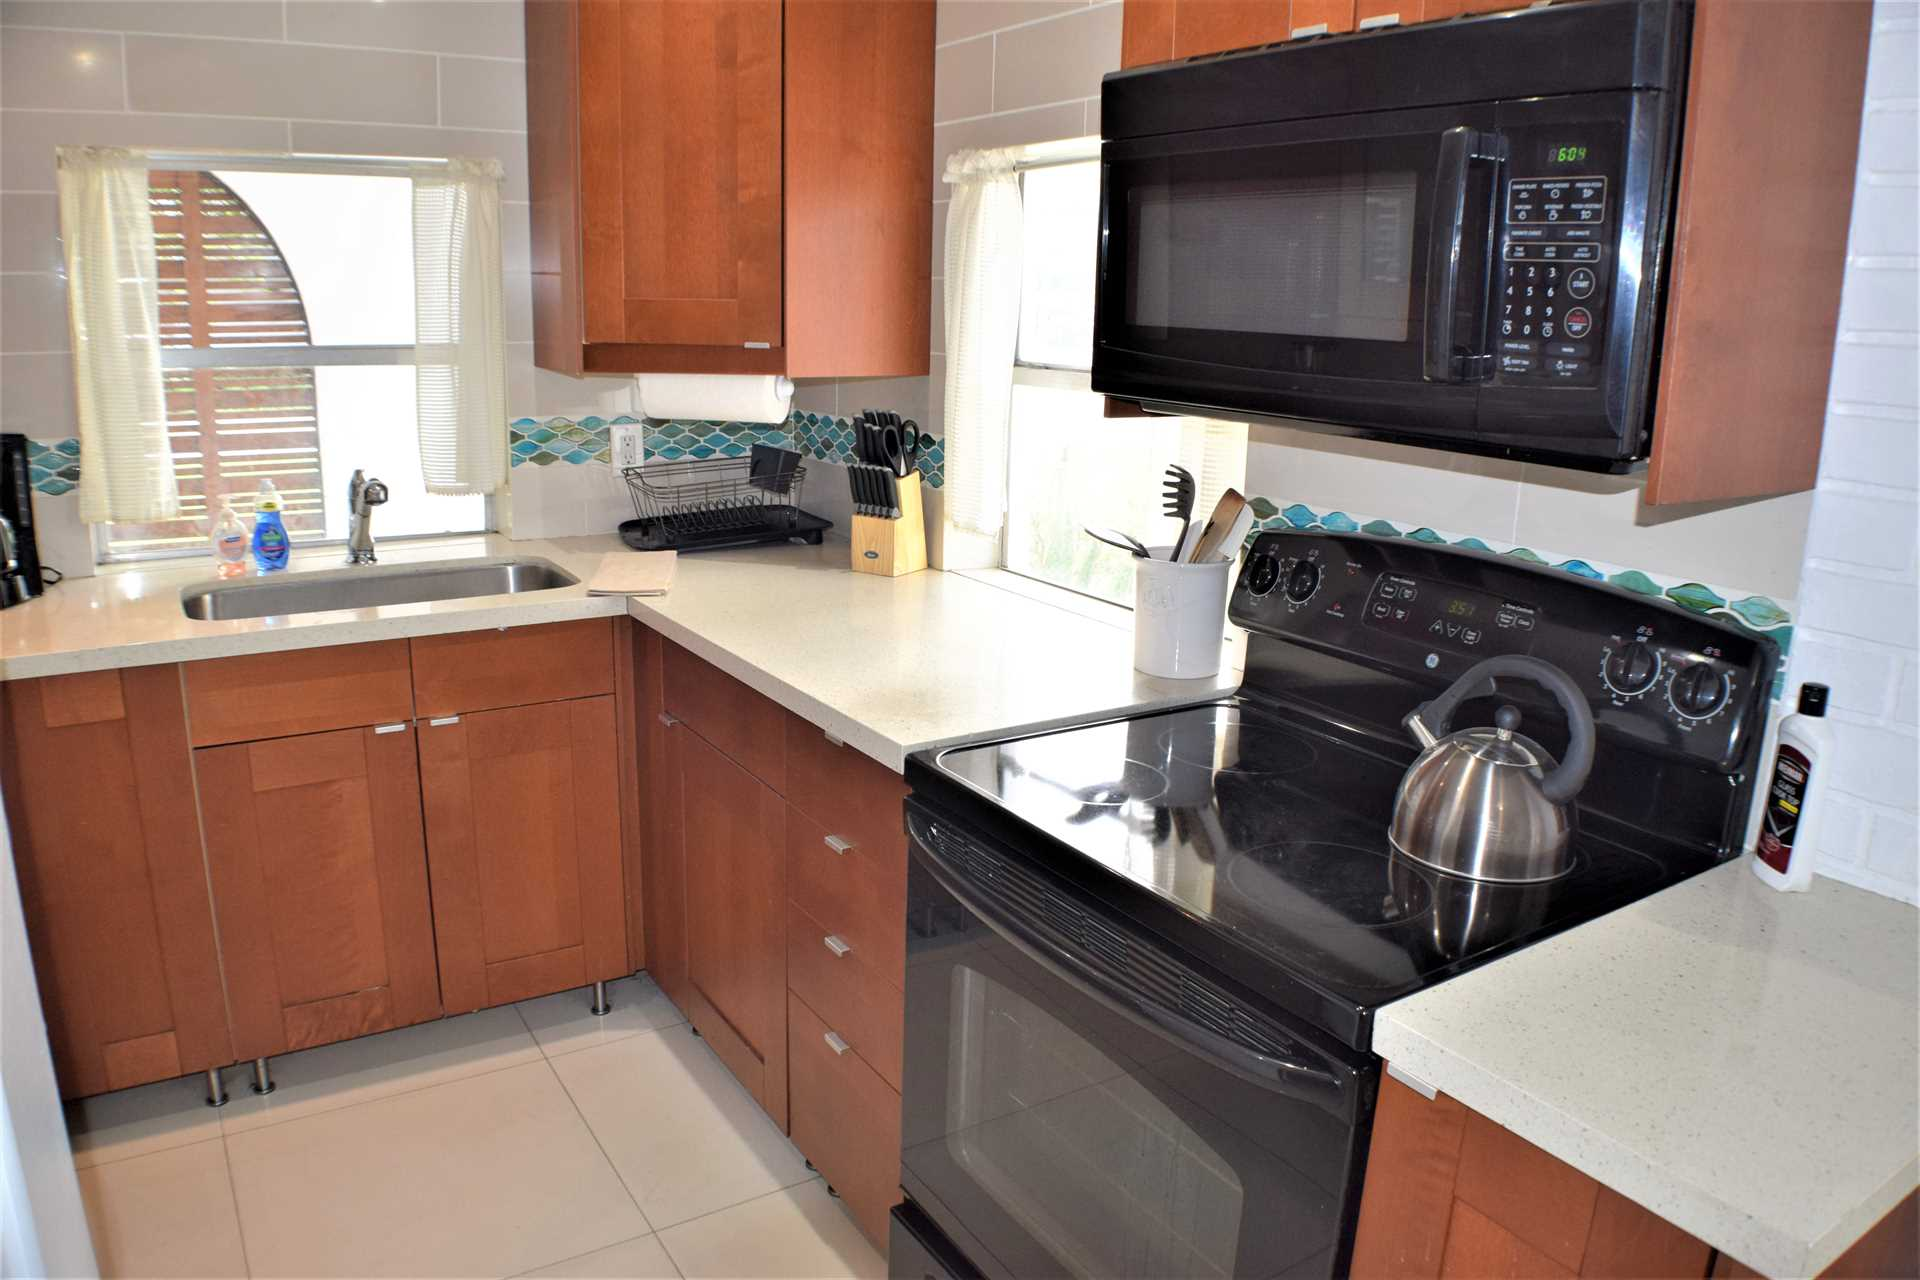 Kitchen has cooktop range and oven plus microwave.